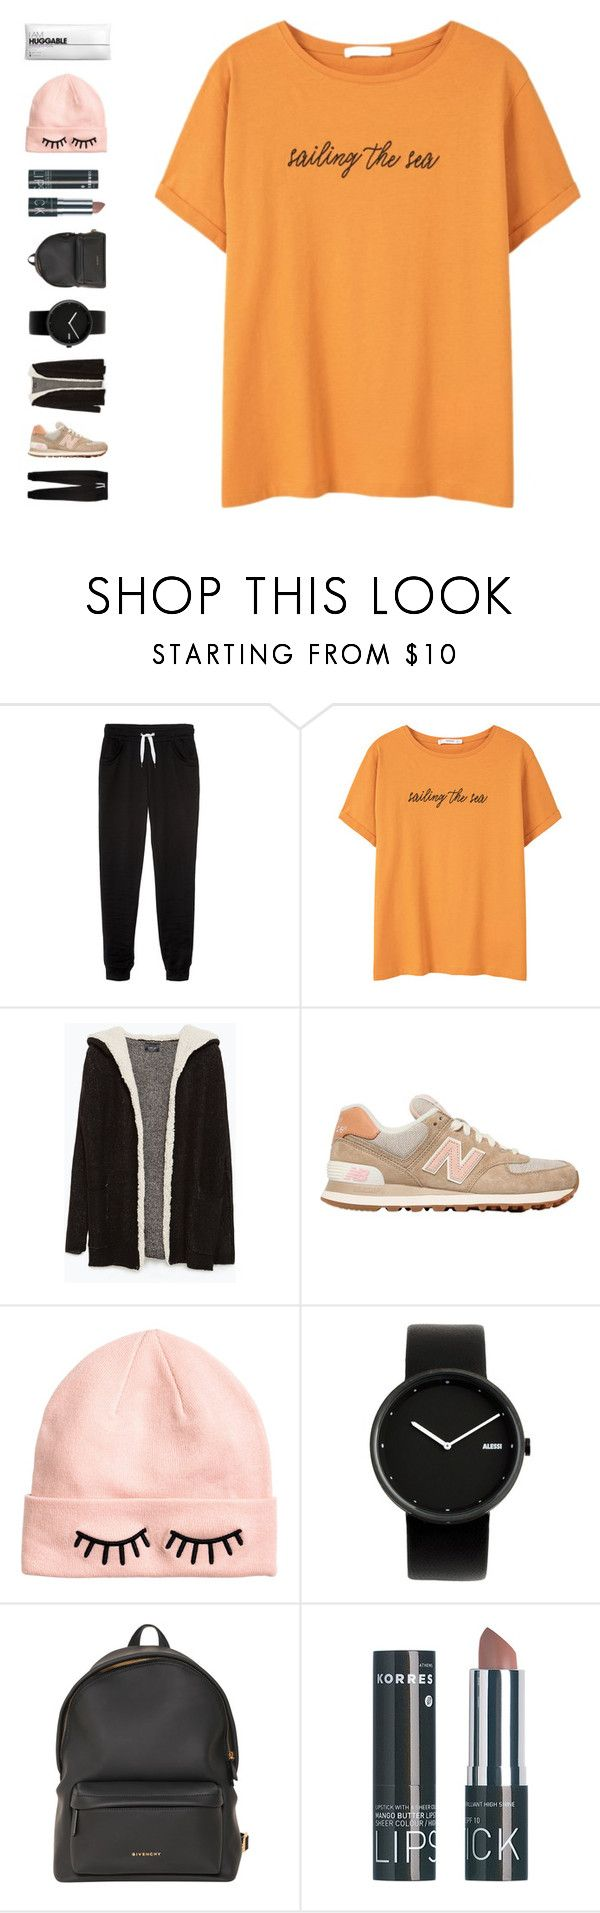 """""""love will remember"""" by ouchm4rvel ❤ liked on Polyvore featuring ONLY, MANGO, Zara, New Balance, H&M, Alessi and Givenchy"""